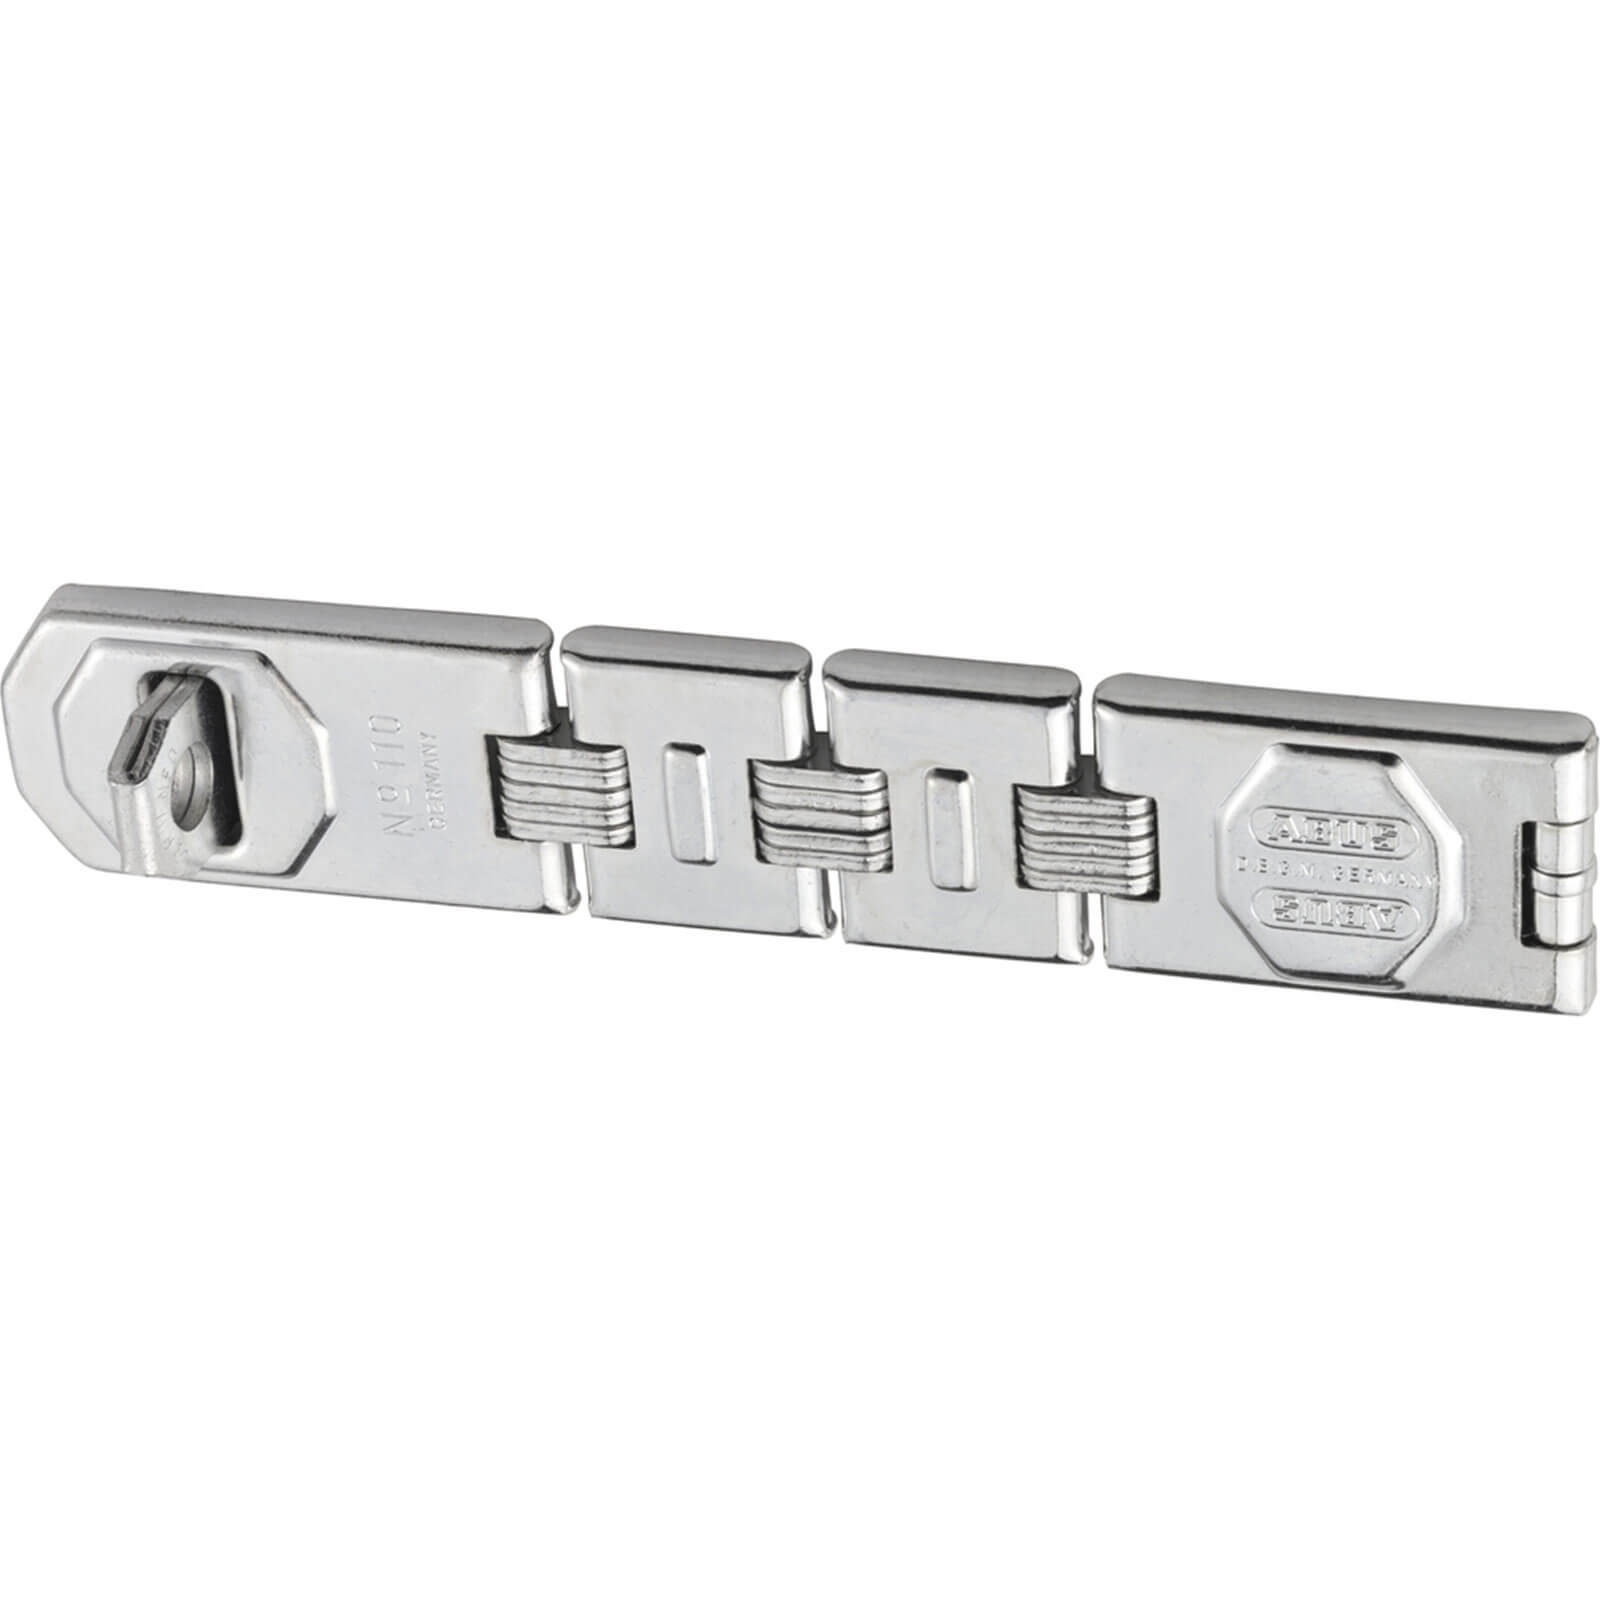 Abus 110 Series Universal Hasp & Staple 230mm Double Jointed